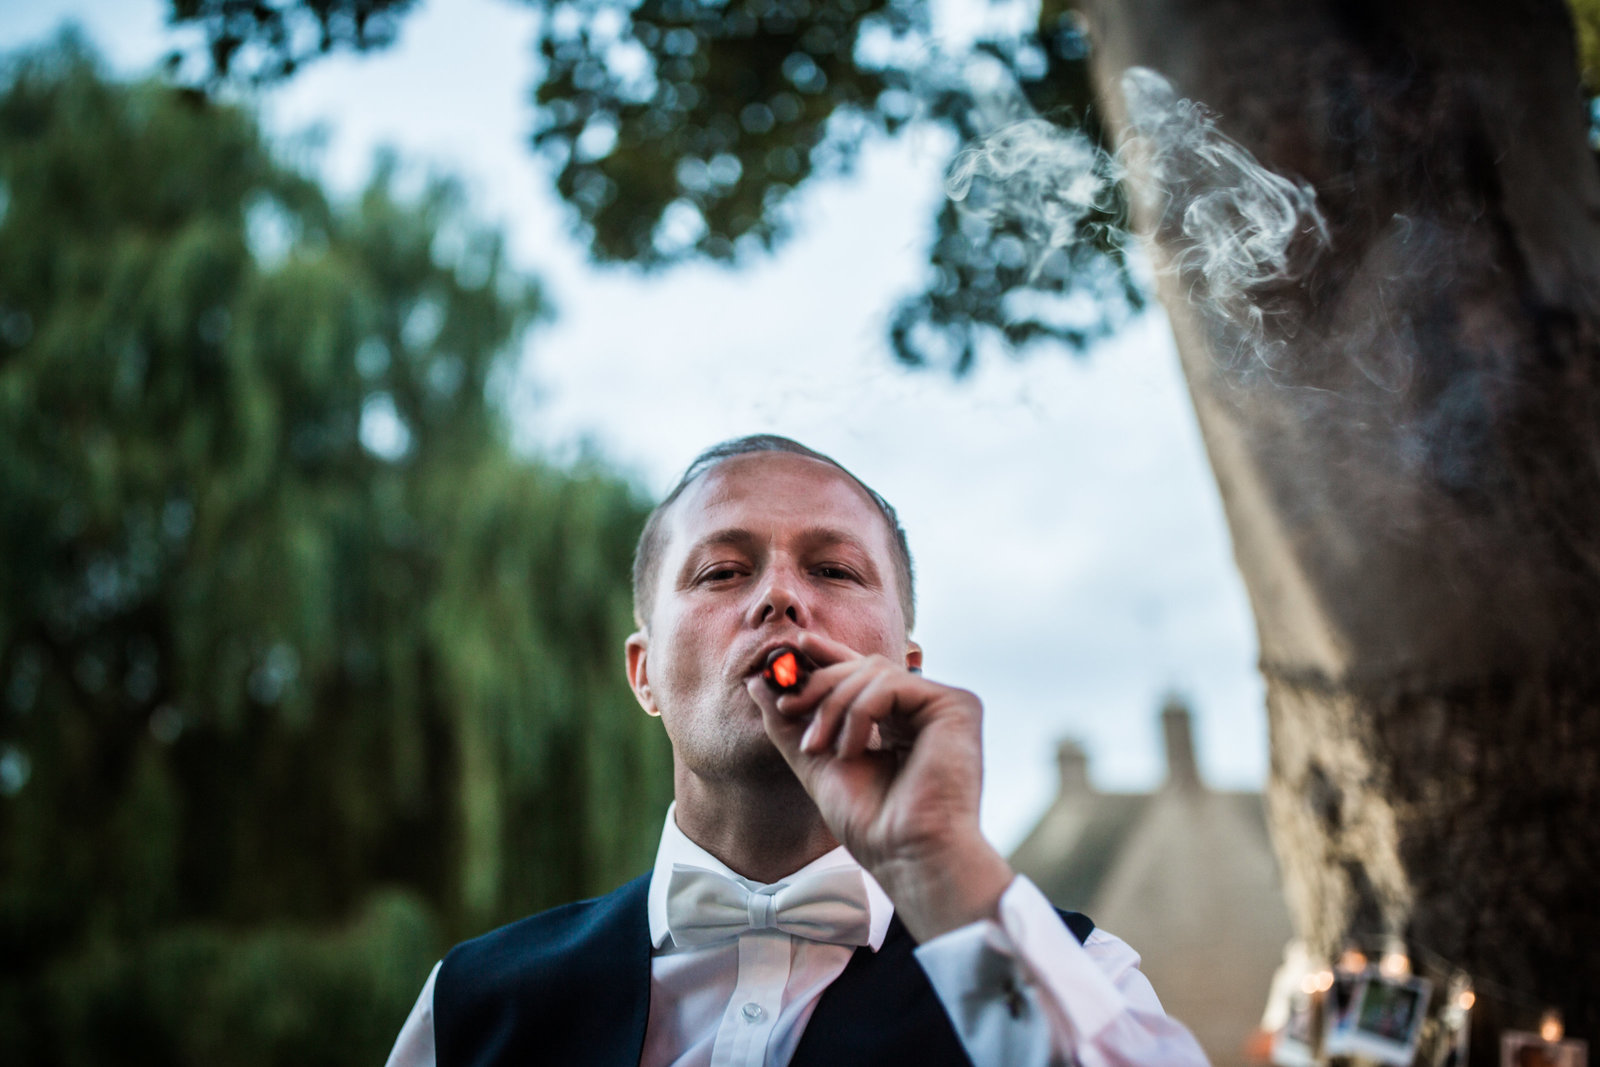 A groom looks down at the camera as he takes a drag from a cigar. Smoke is in front of his face and he is stood next to a tree in Norfolk.